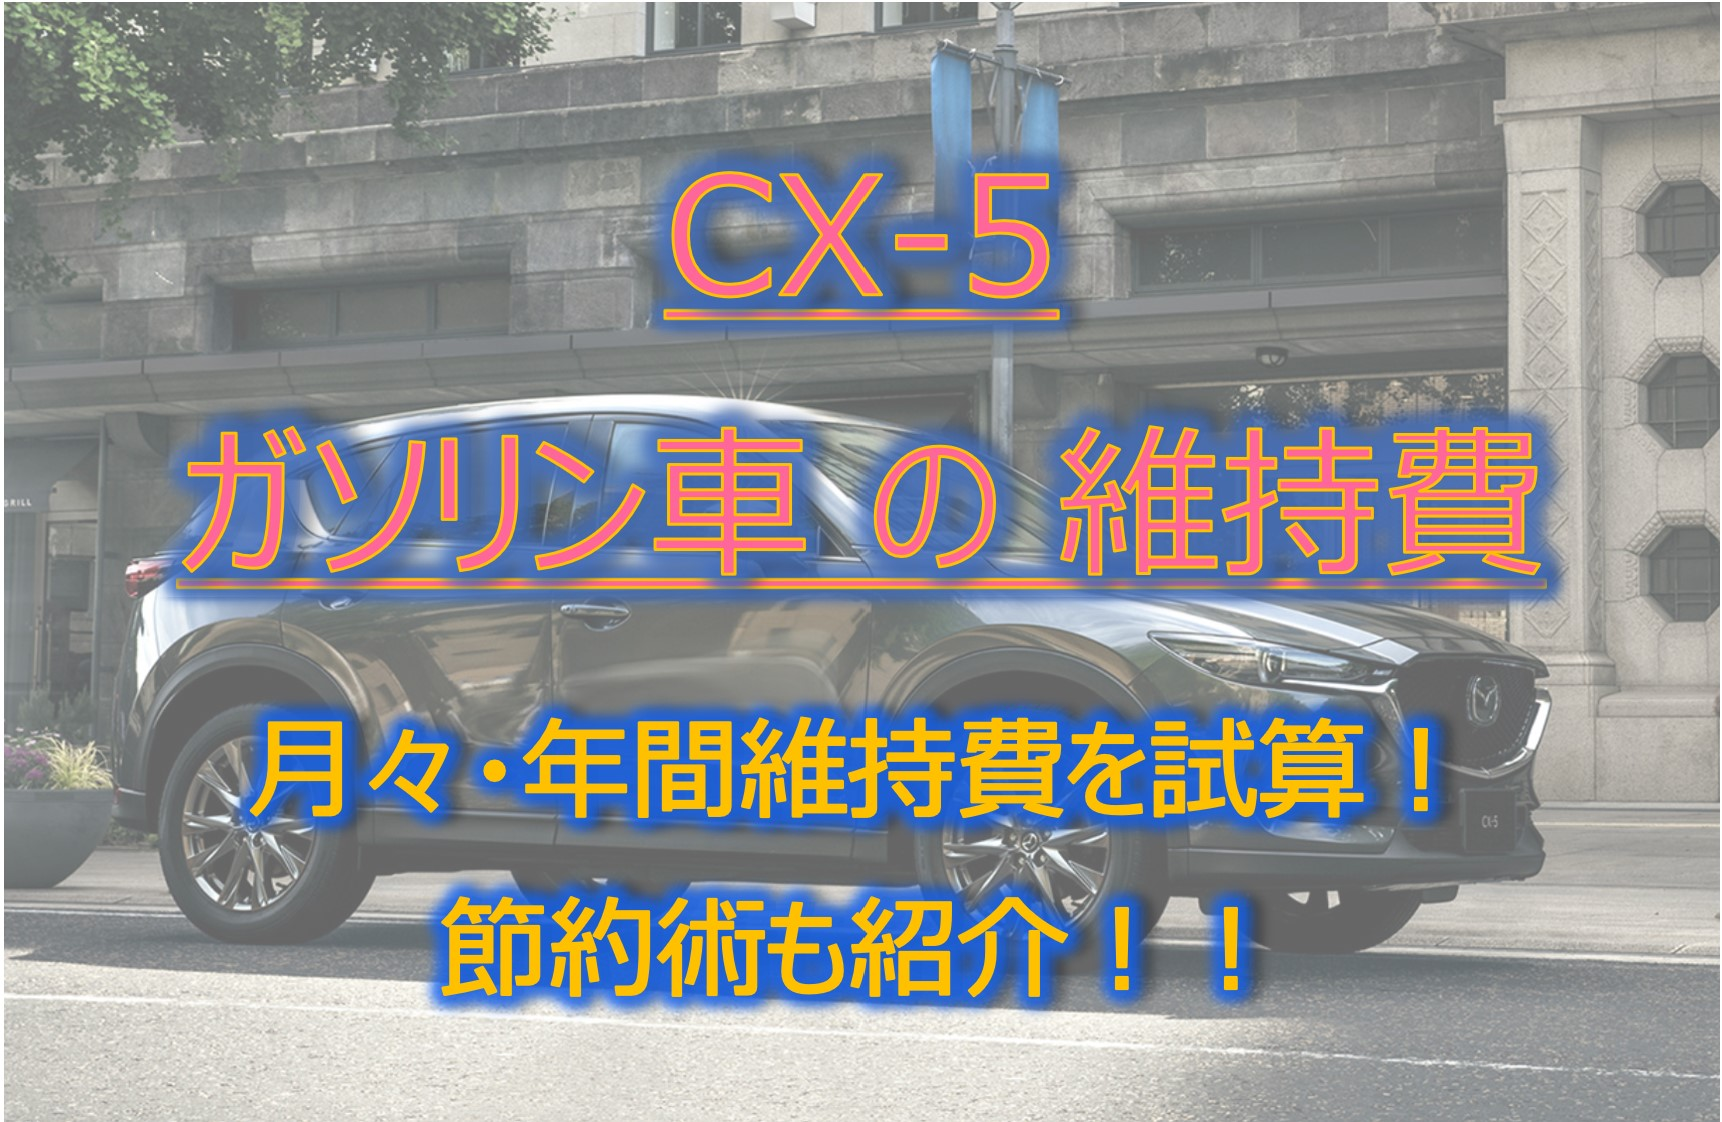 CX-5_ガソリン_維持費